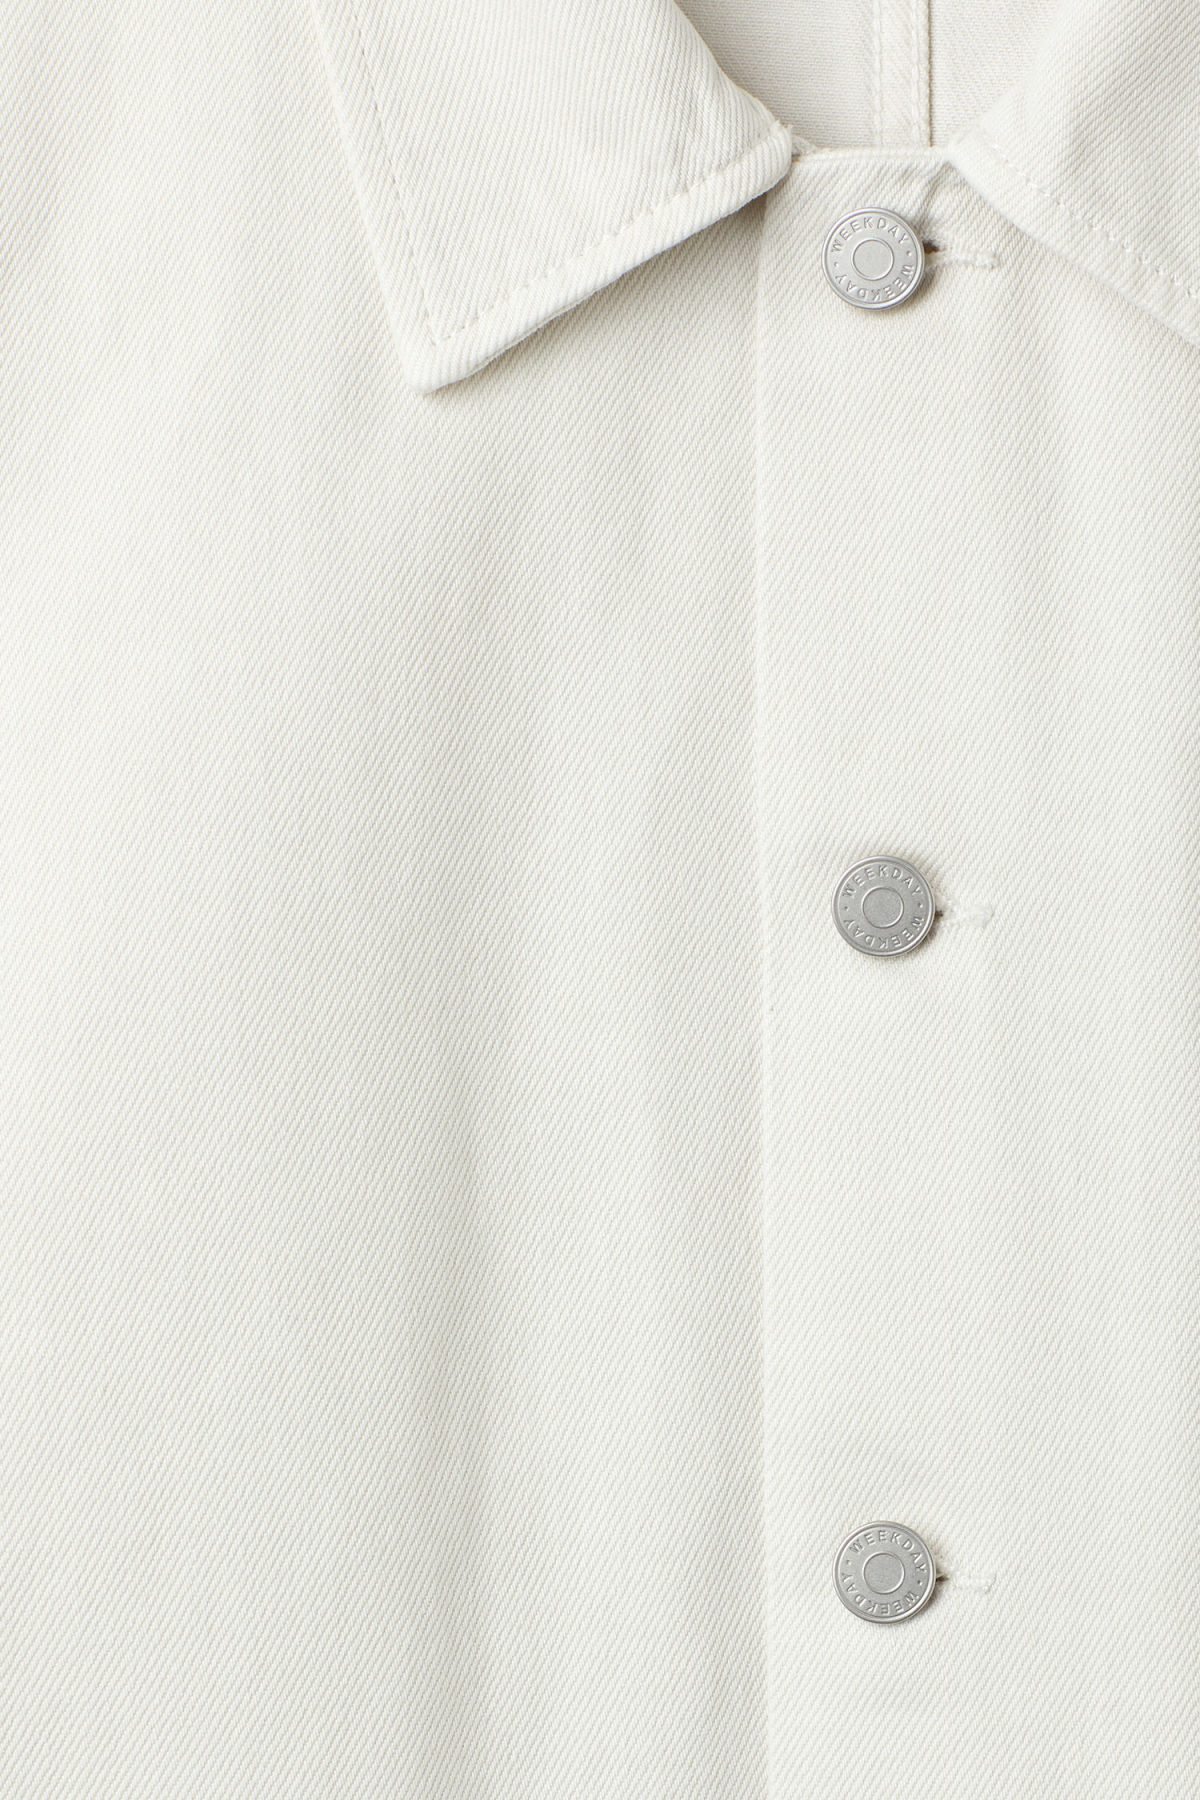 Detailed image of Weekday generic two-toned jacket in white